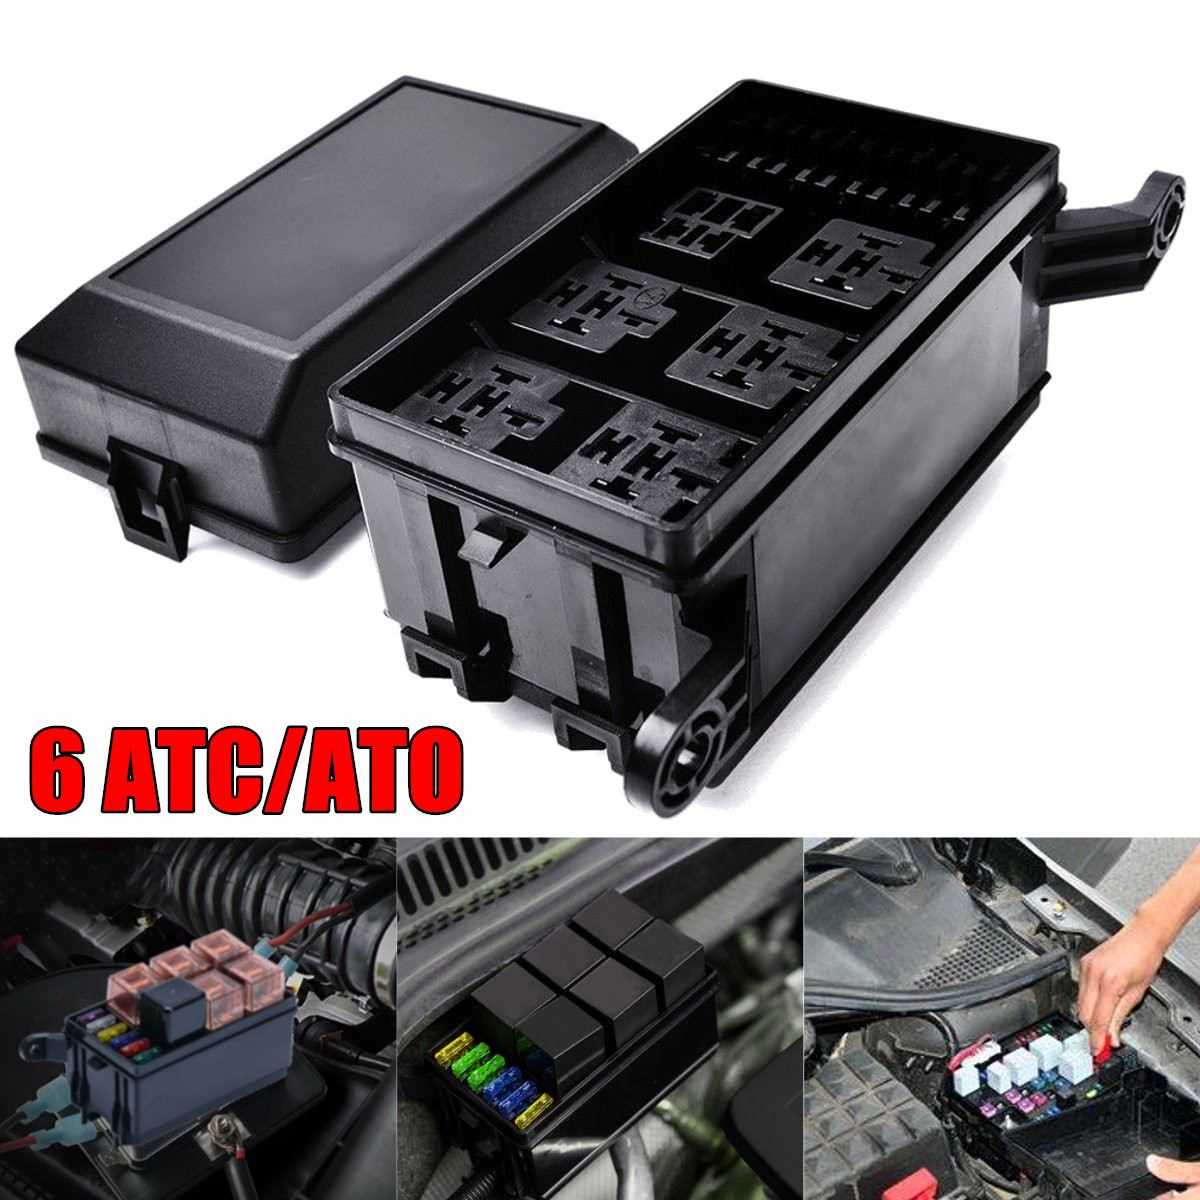 auto car fuse relay holder box relay socket 6 relay 6 atc ato fuses universal in car switches relays from automobiles motorcycles on aliexpress com  [ 1200 x 1200 Pixel ]